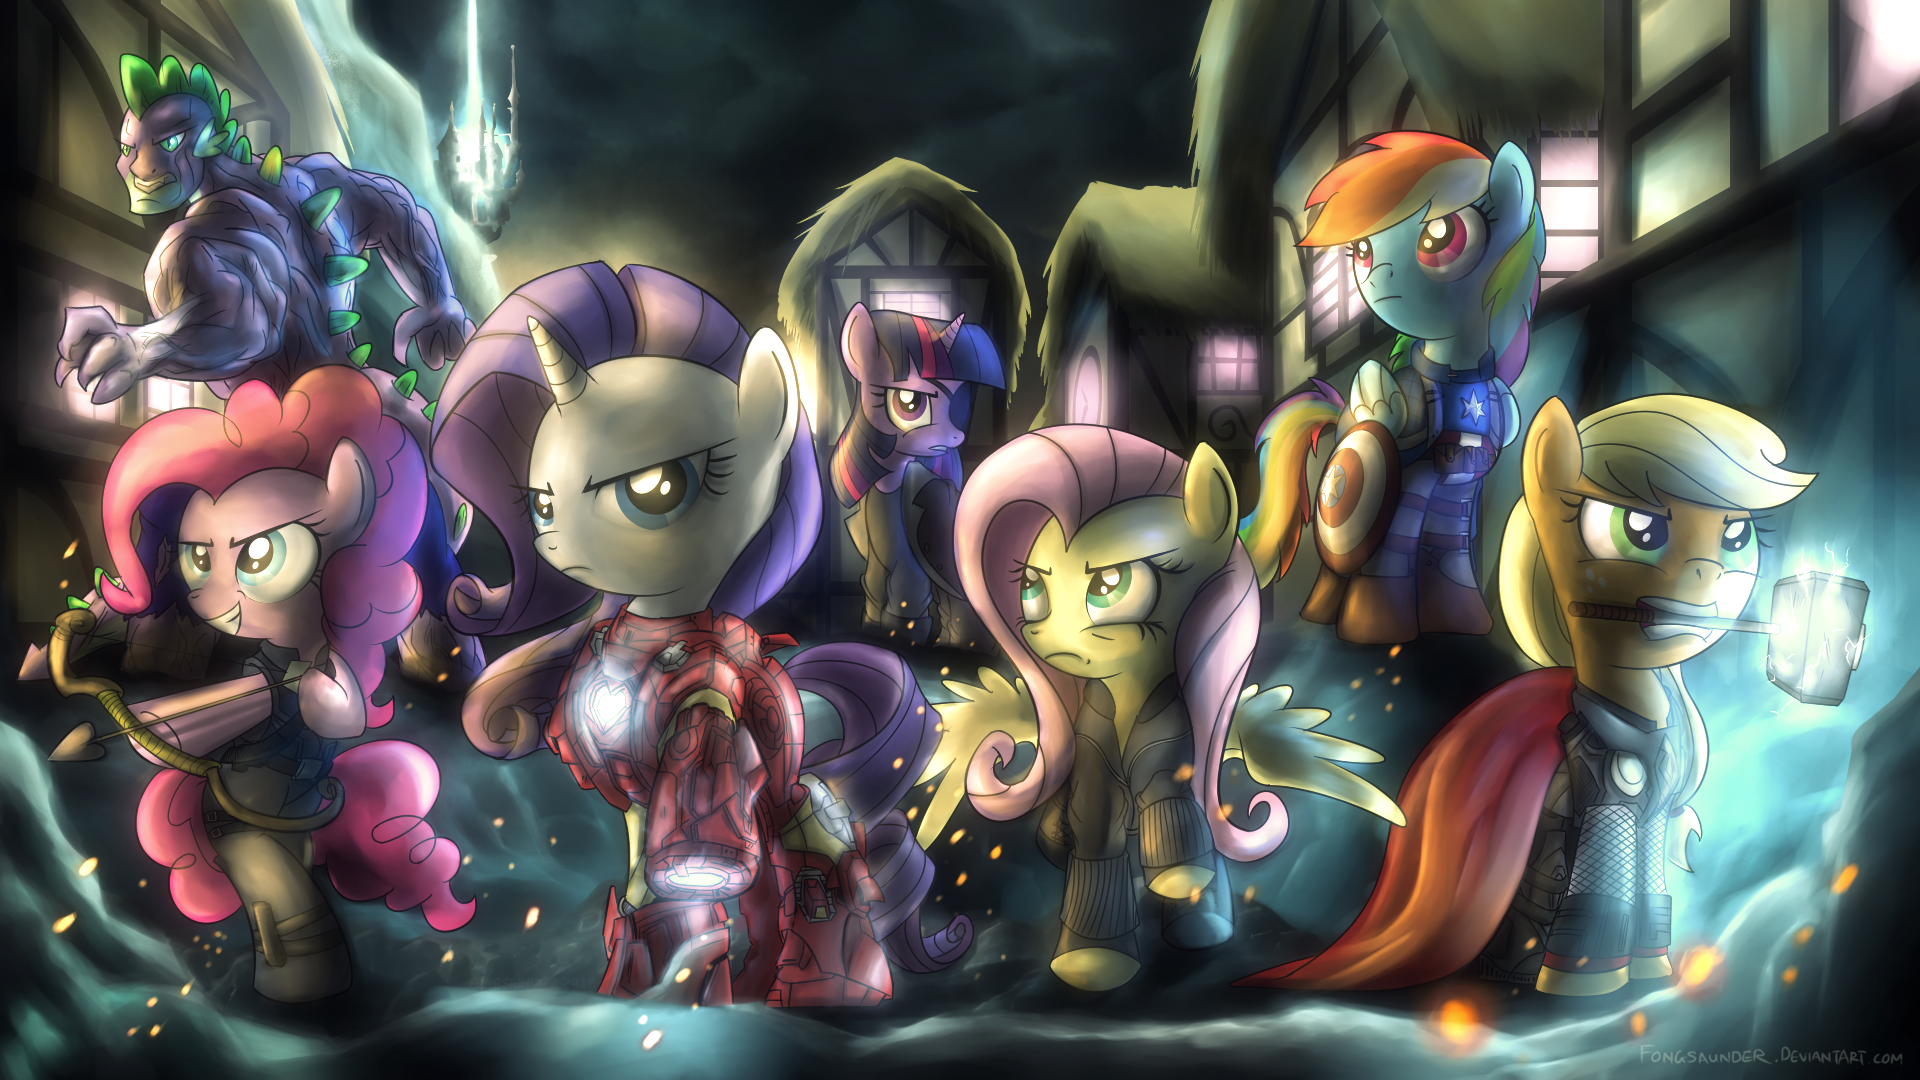 Mlp Mane Six Avengers Wallpaper 1080p From Shadow Of